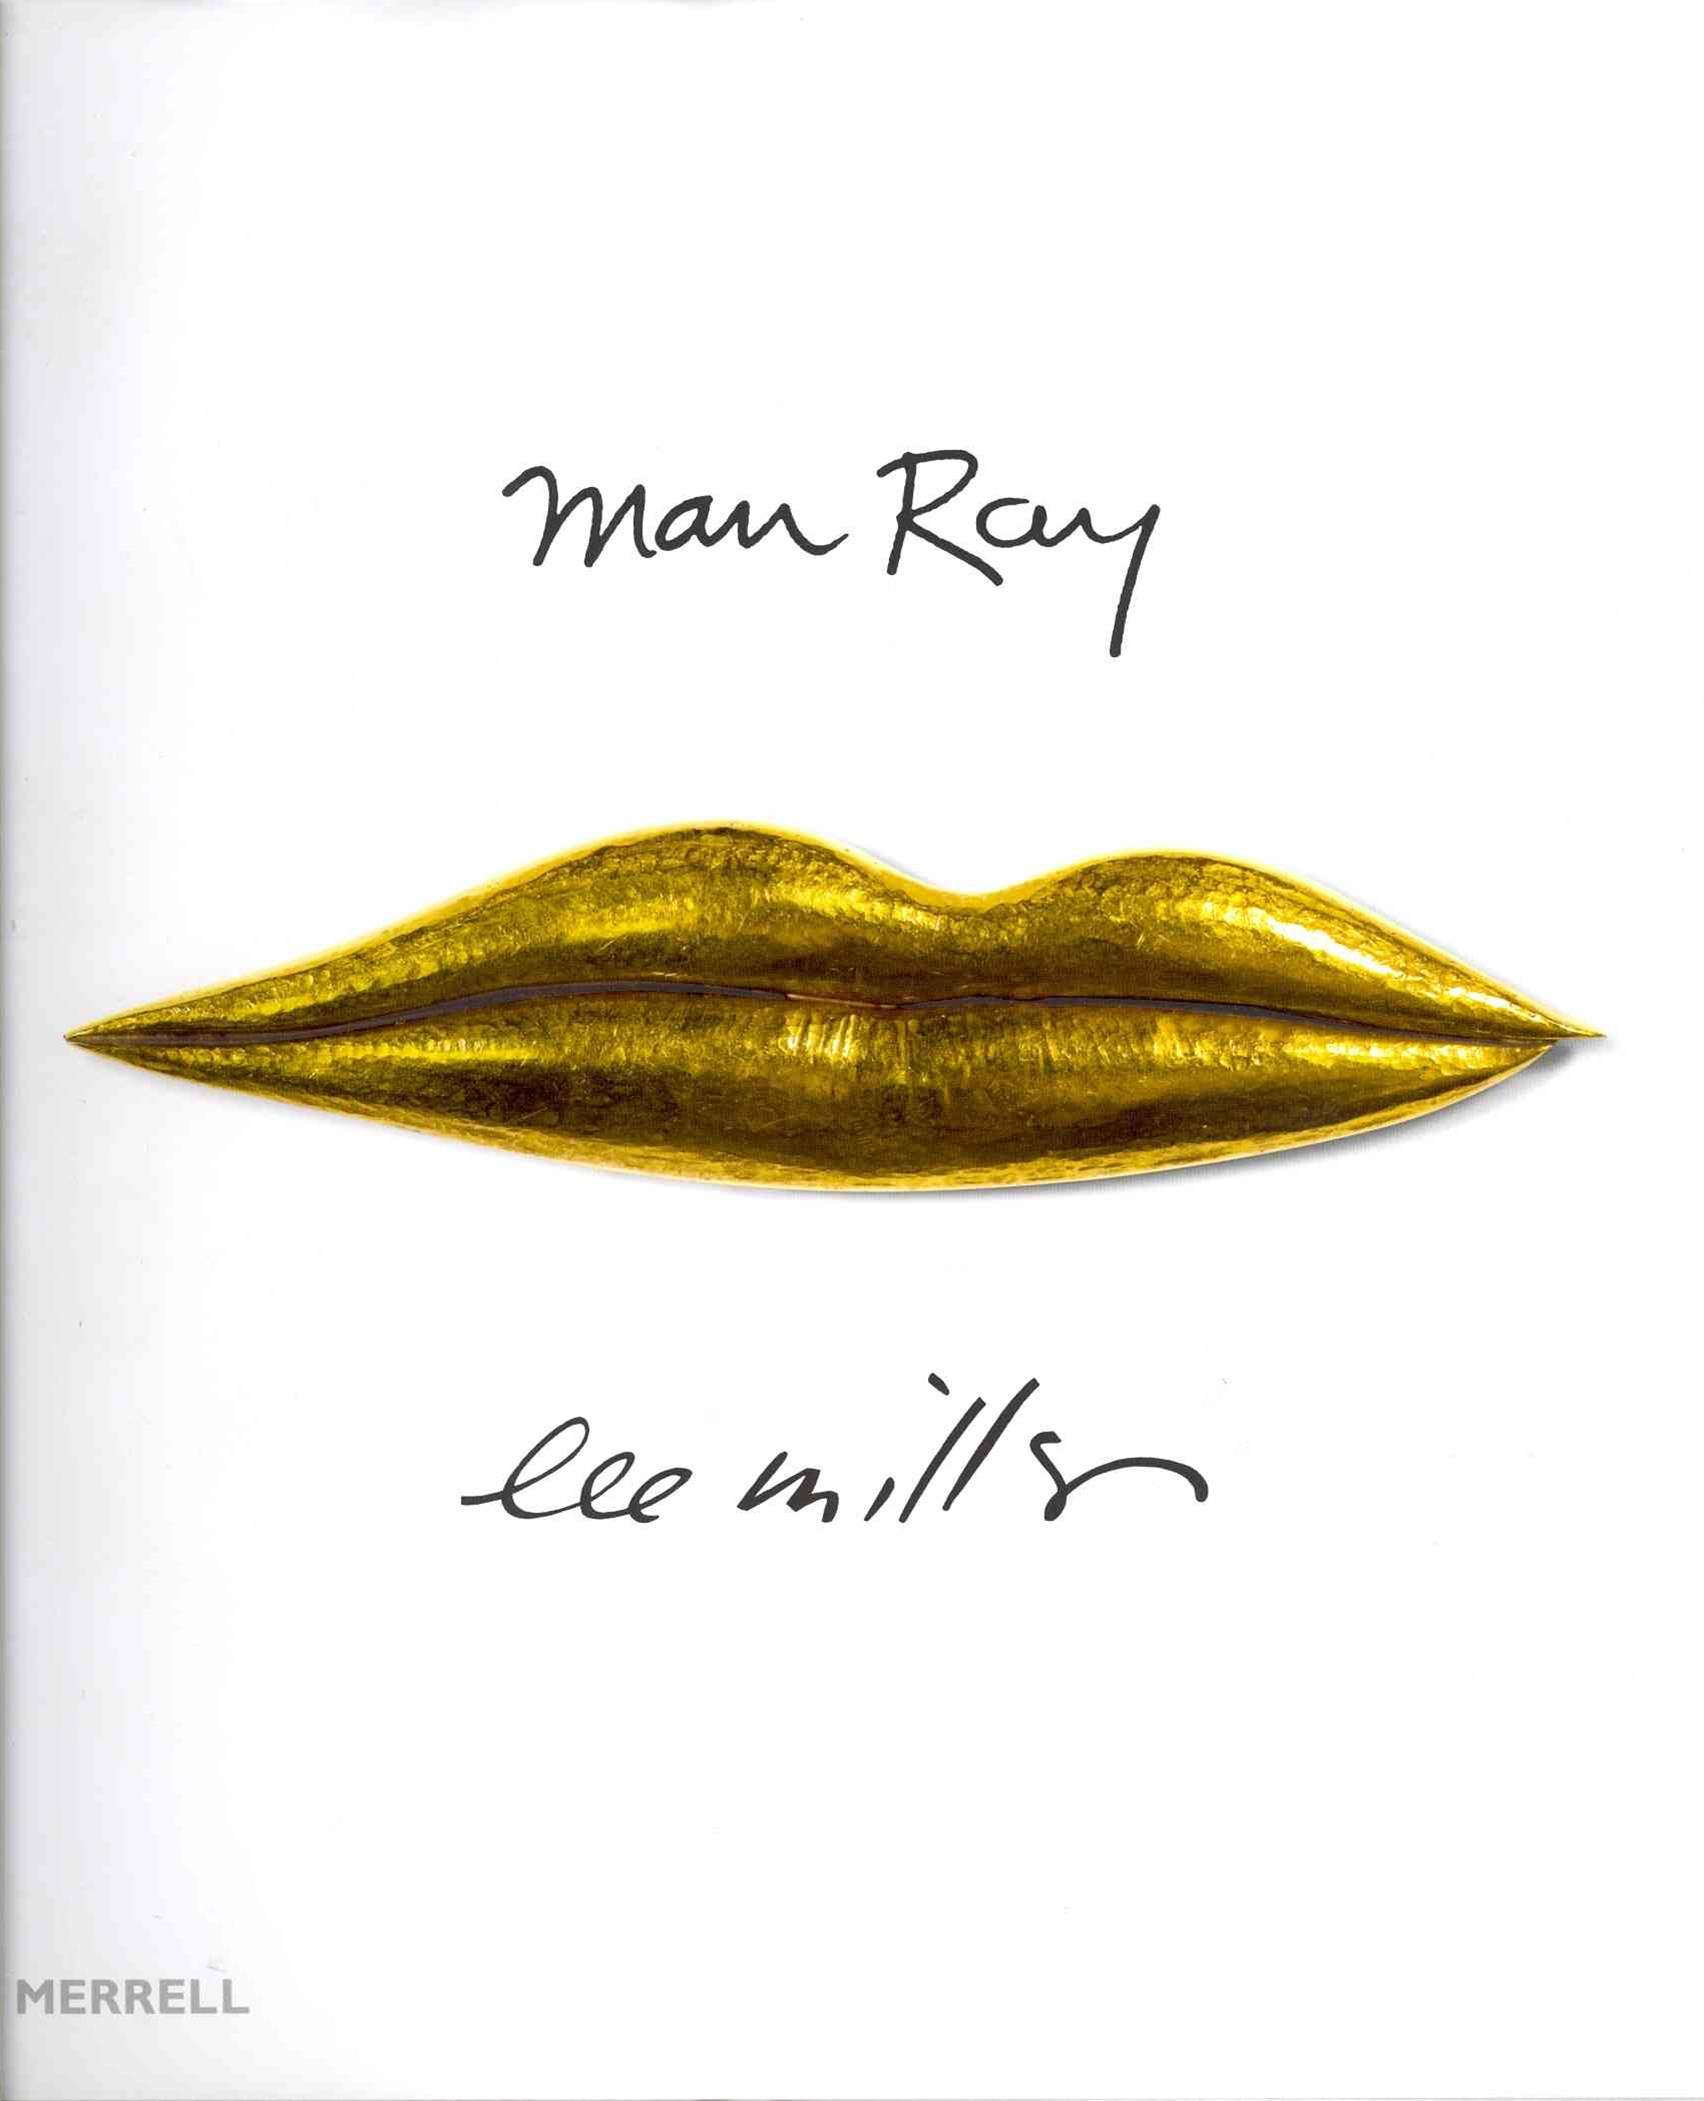 Man Ray / Lee Miller